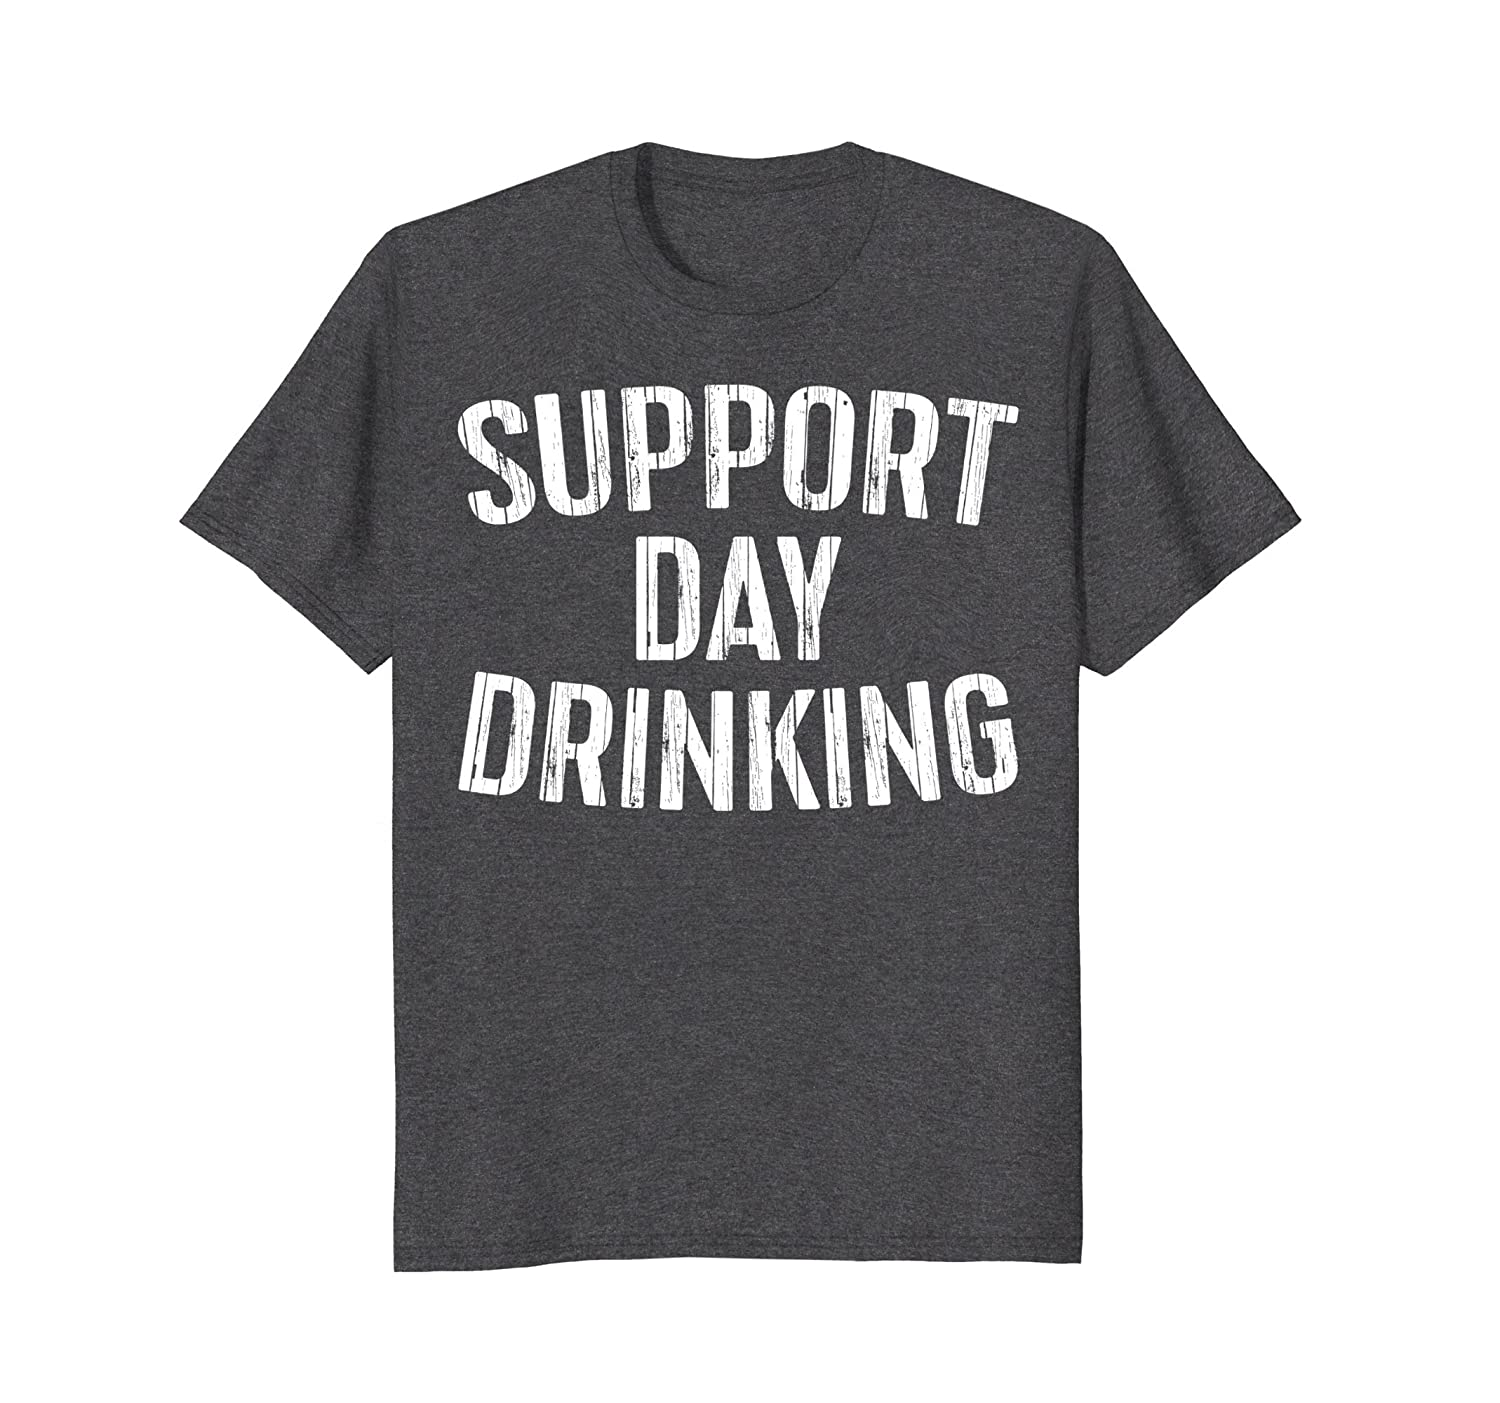 Support Day Drinking T-Shirt Funny Drinking Gift Shirt